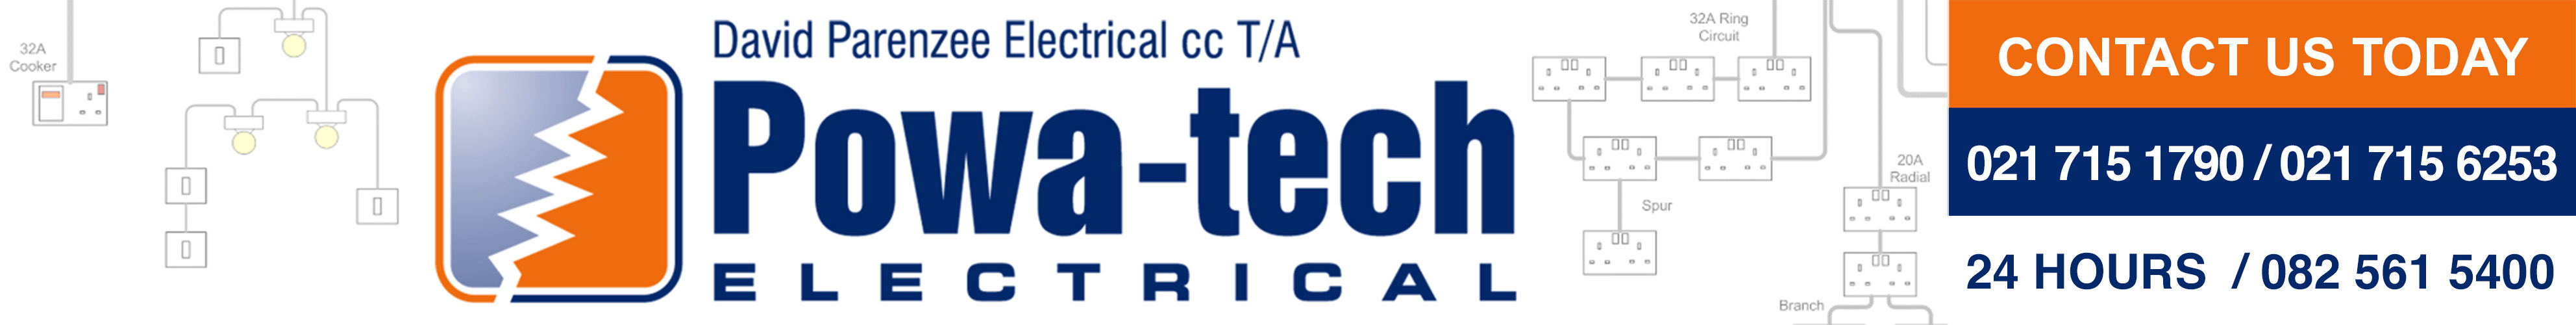 Powa-tech Electrical